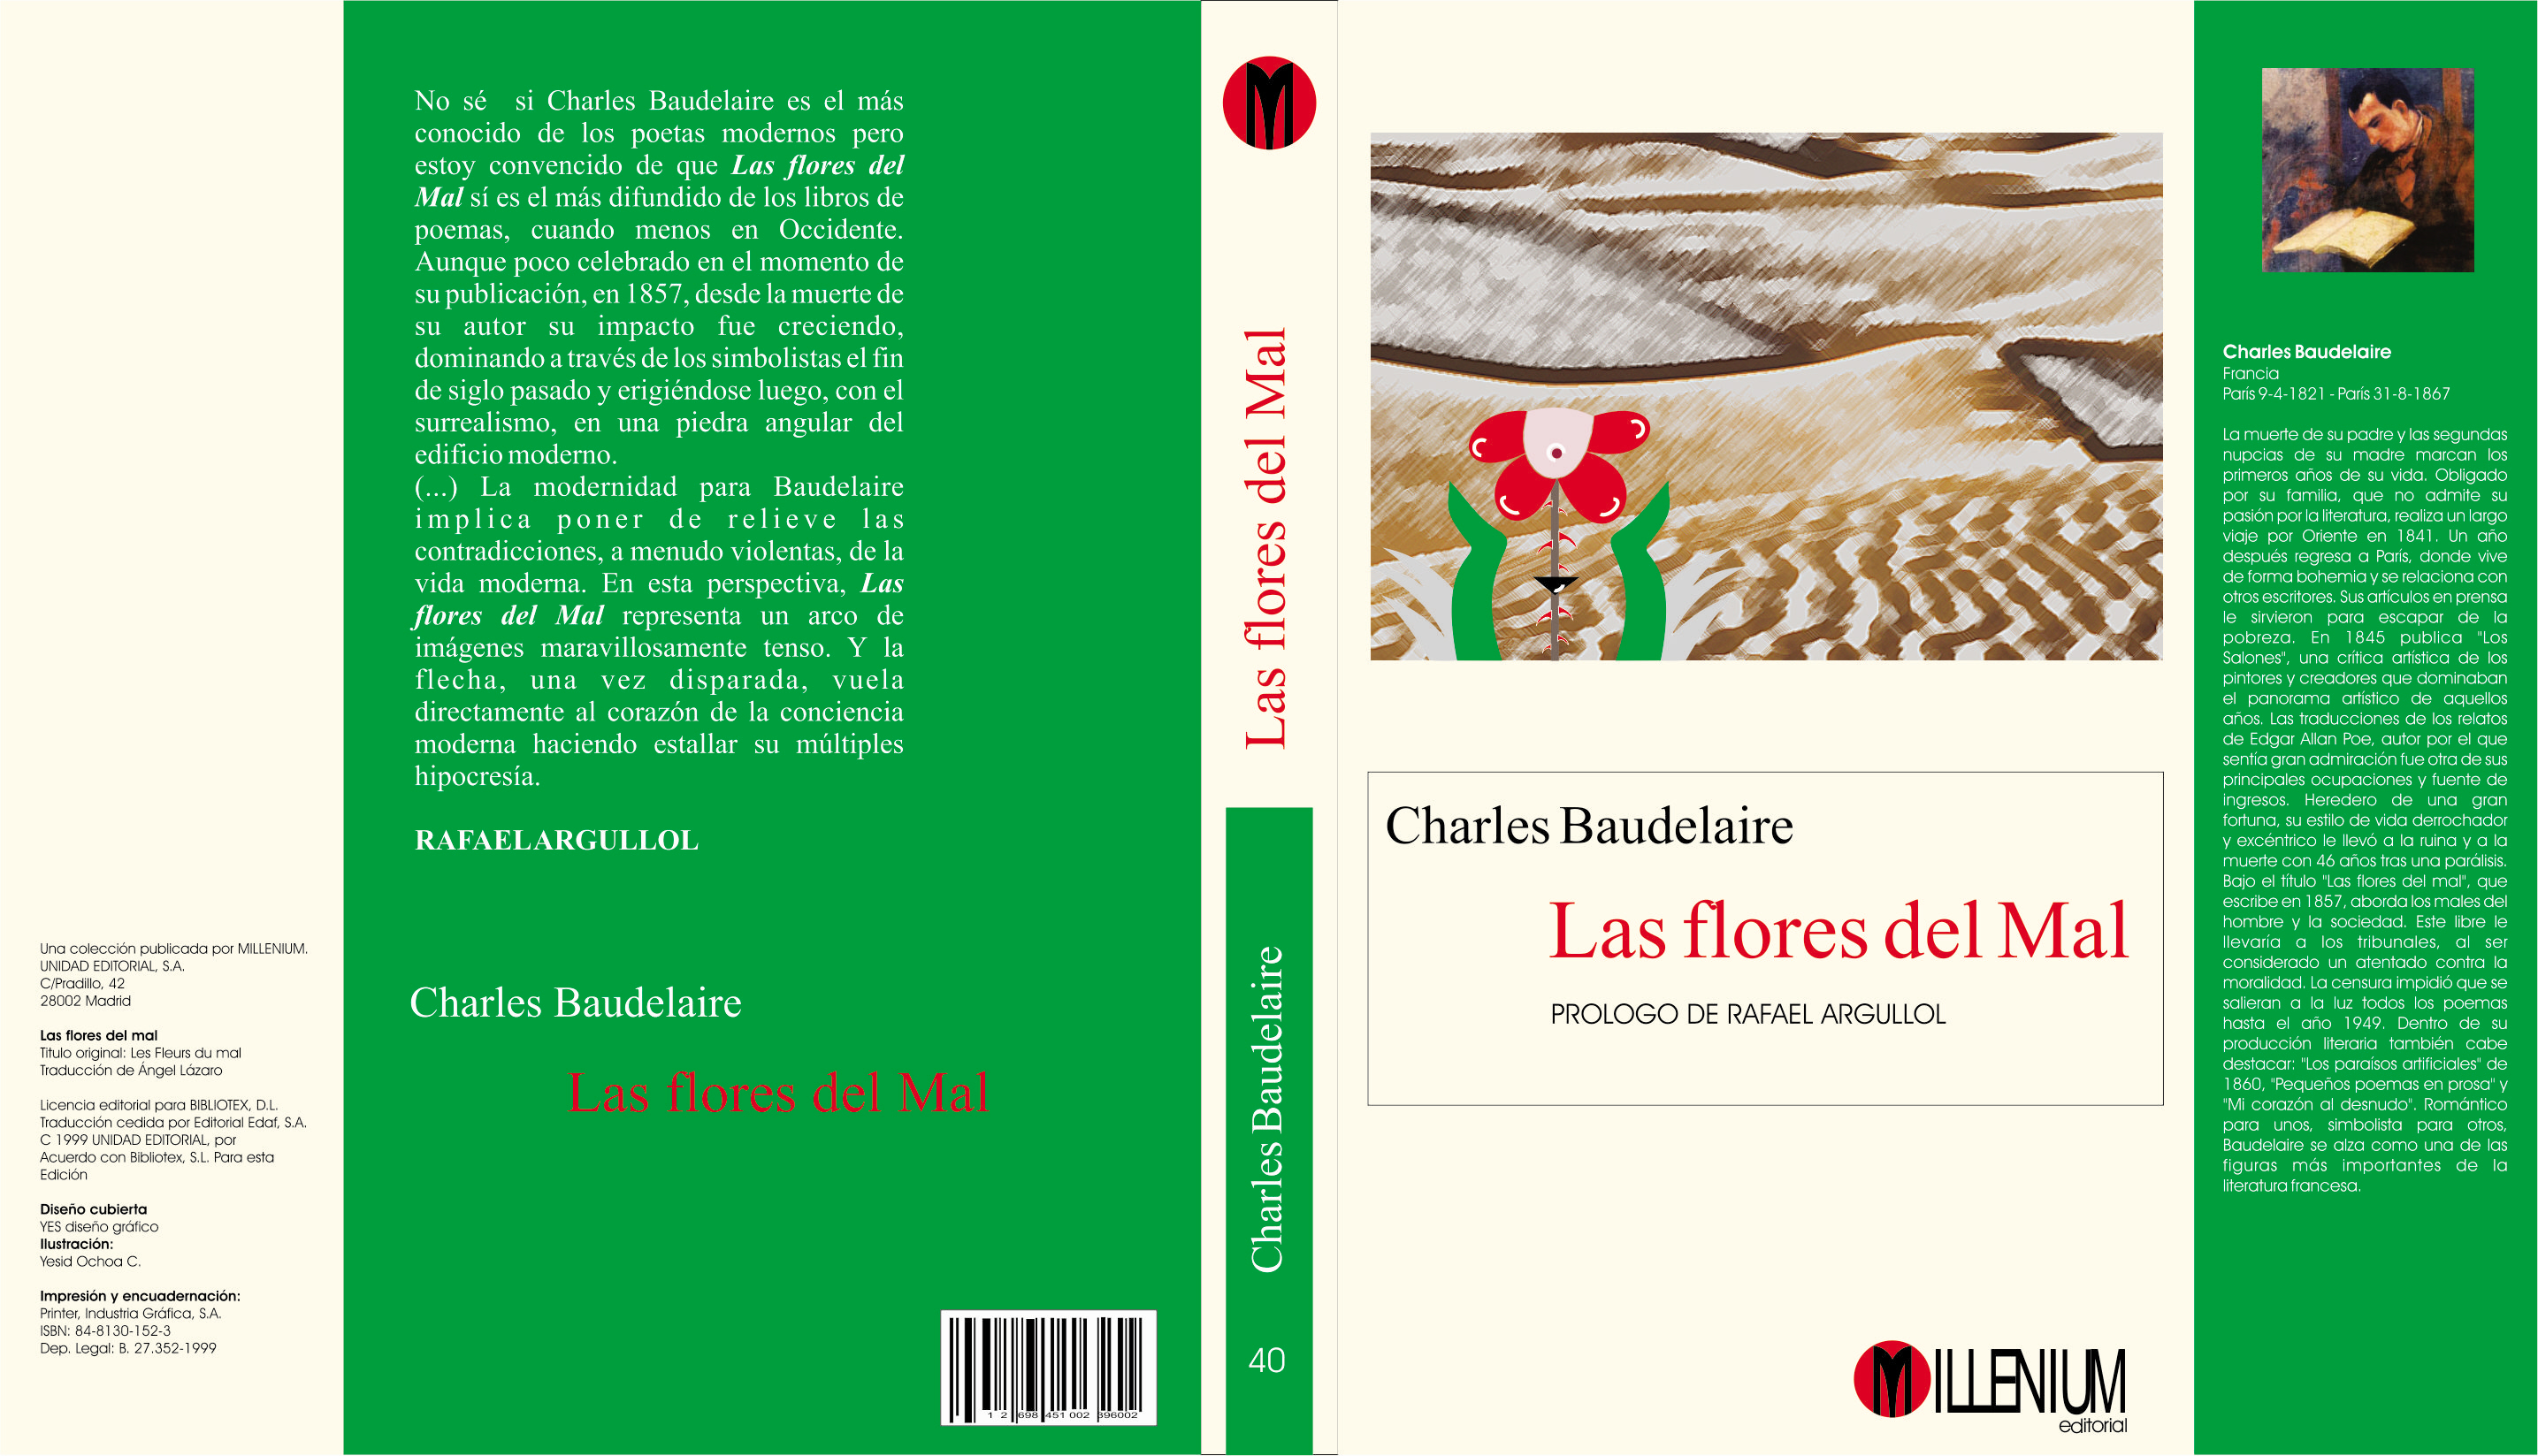 Book Cover Design Corel Draw : Design by yesid ochoa at coroflot